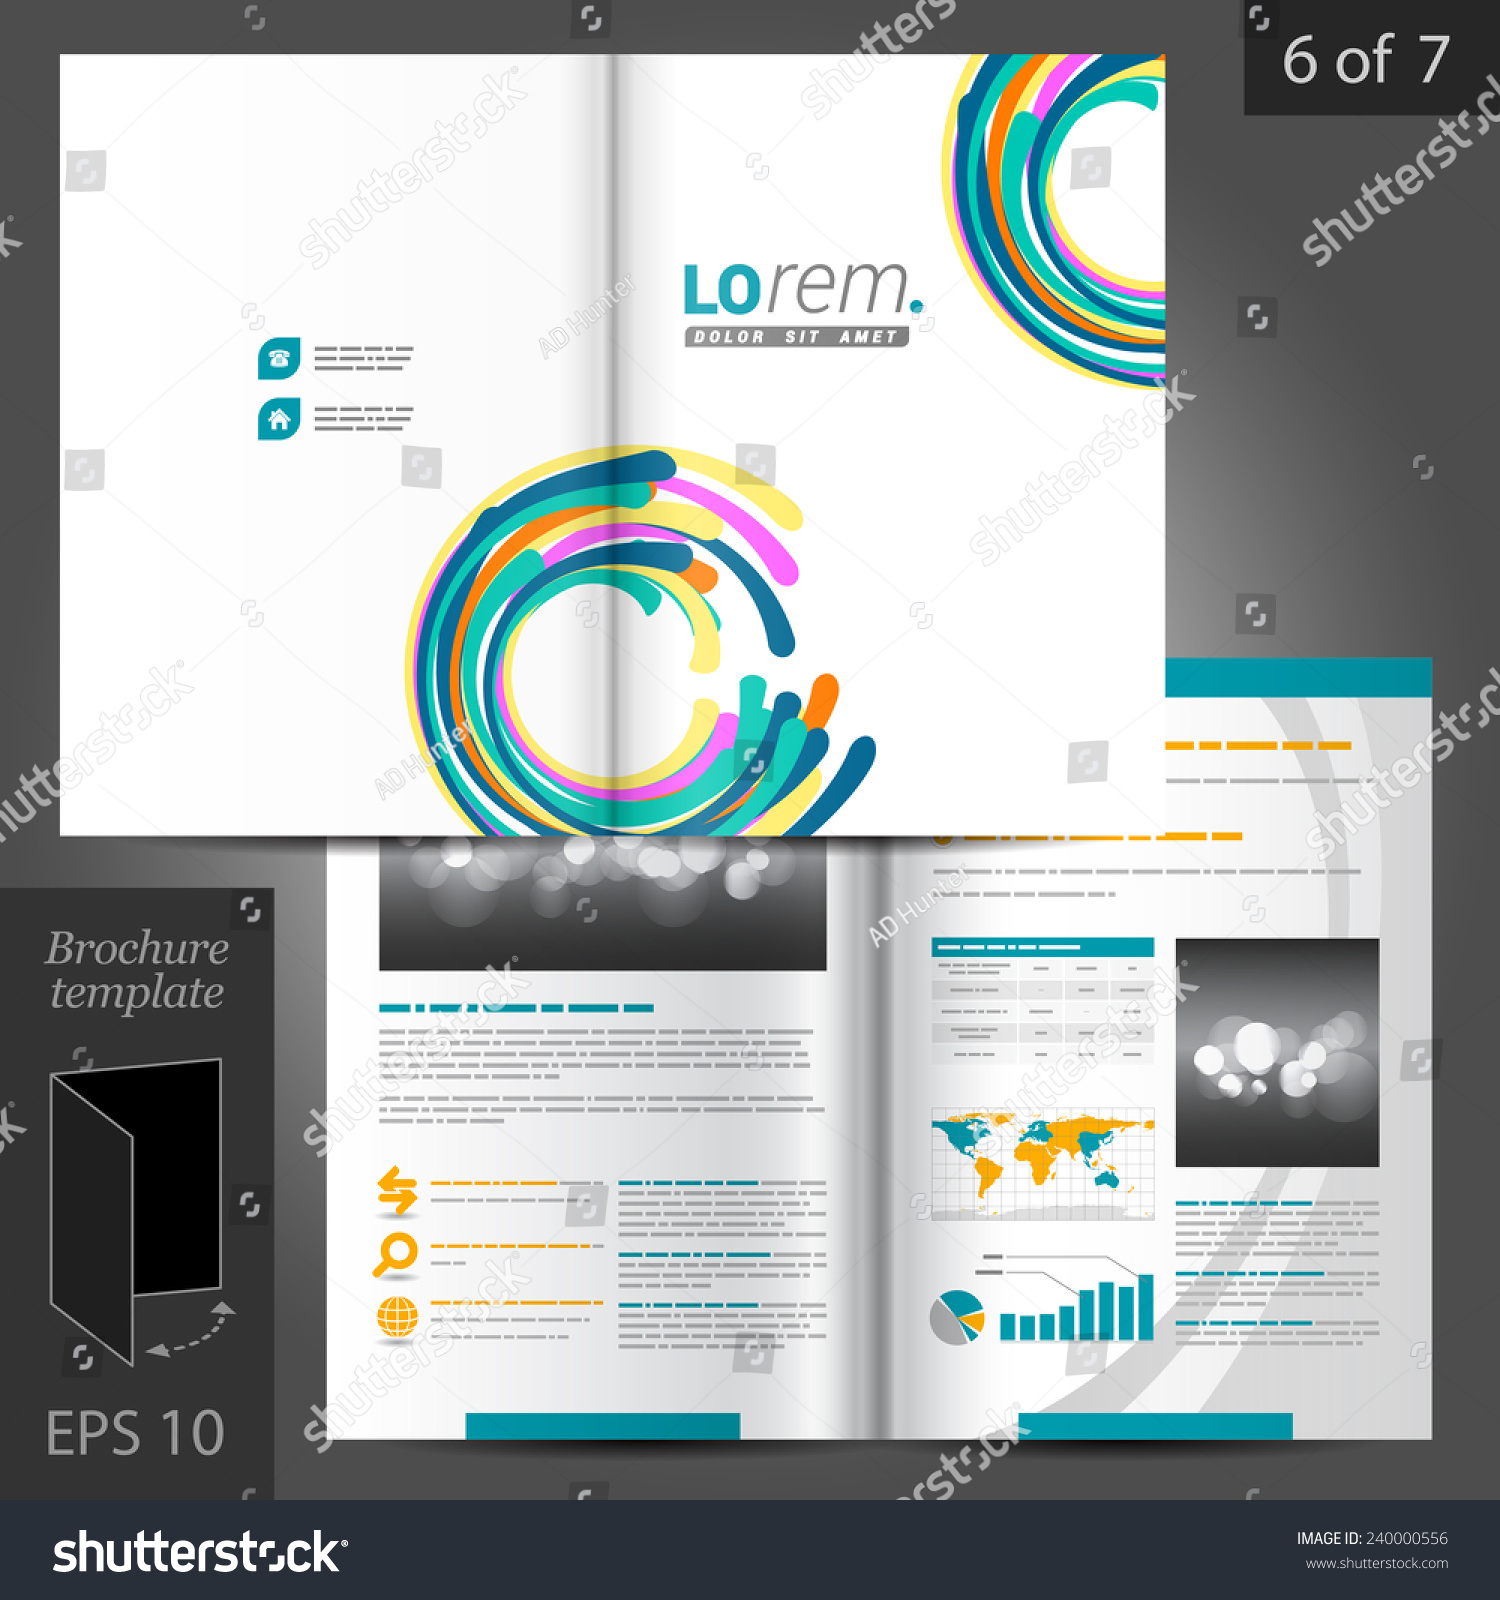 Colorful Vector Creative Brochure Template Design Stock Vector